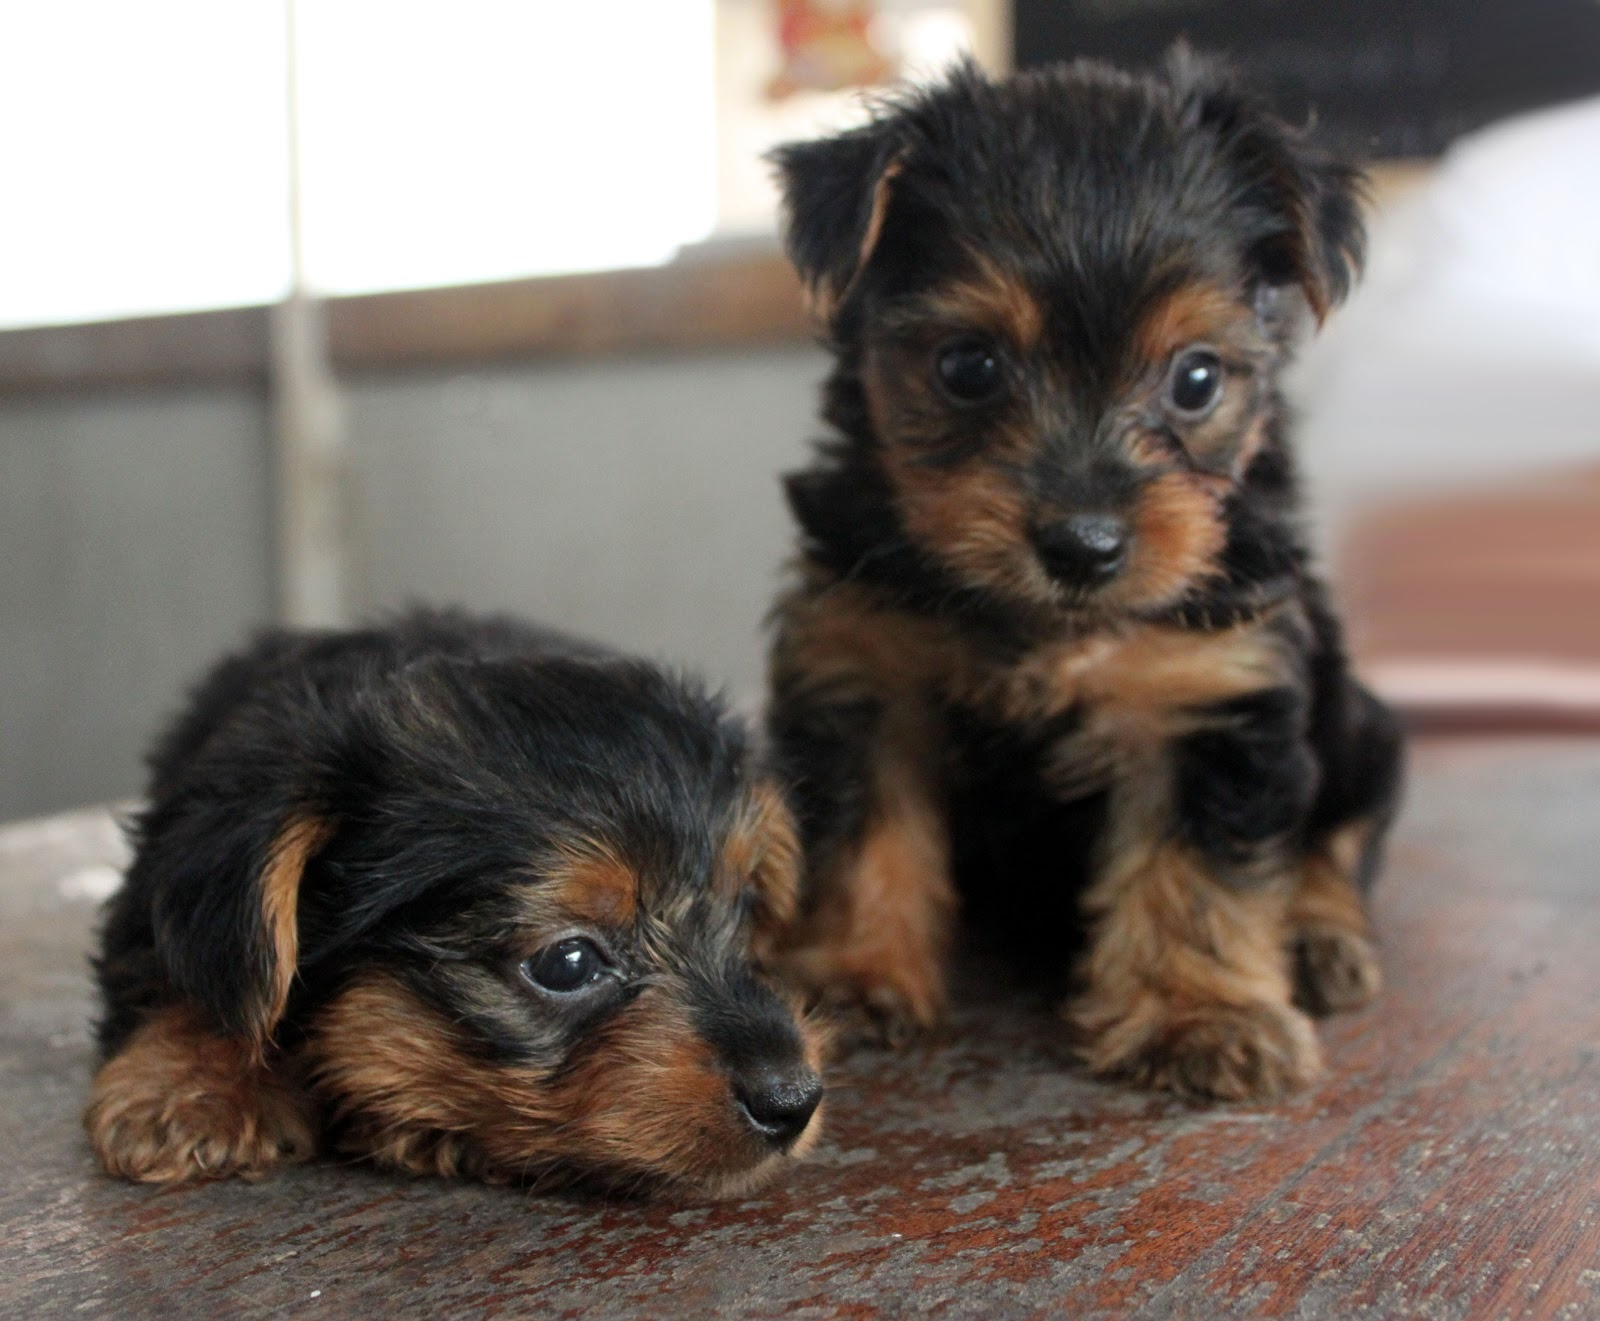 Preciouspups Featured Doggy Yorkshire Terriers